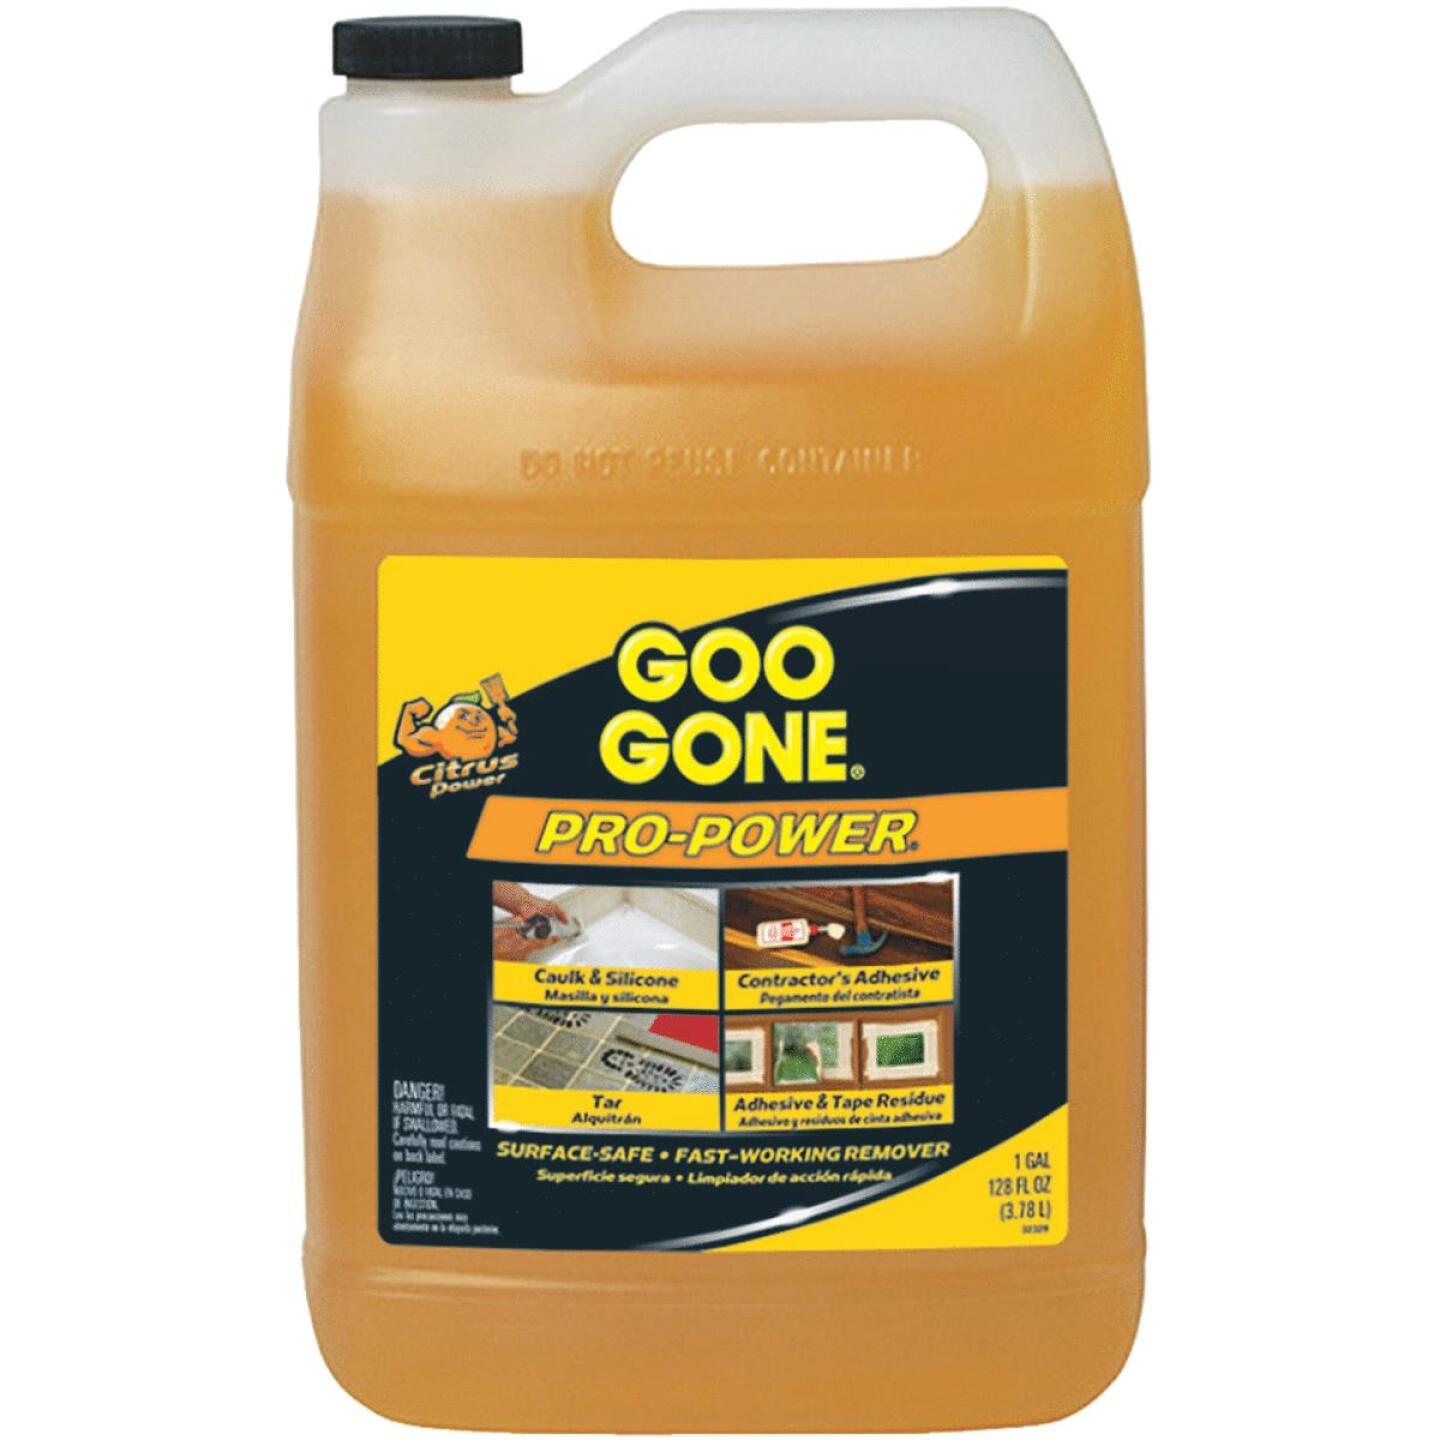 Goo Gone 1 Gal. Pro-Power Adhesive Remover Image 281